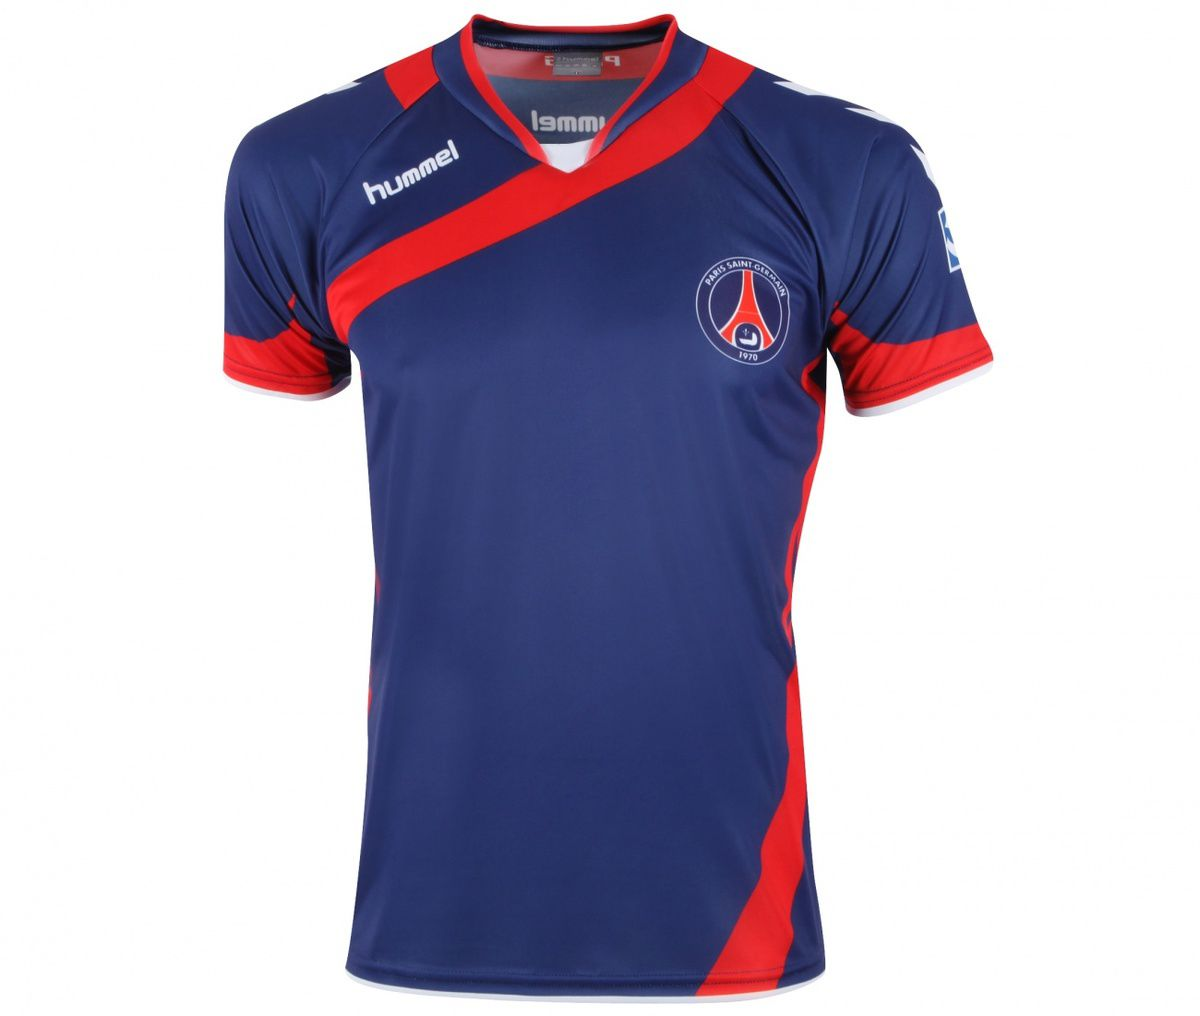 Maillot 2011/2012 PSG home